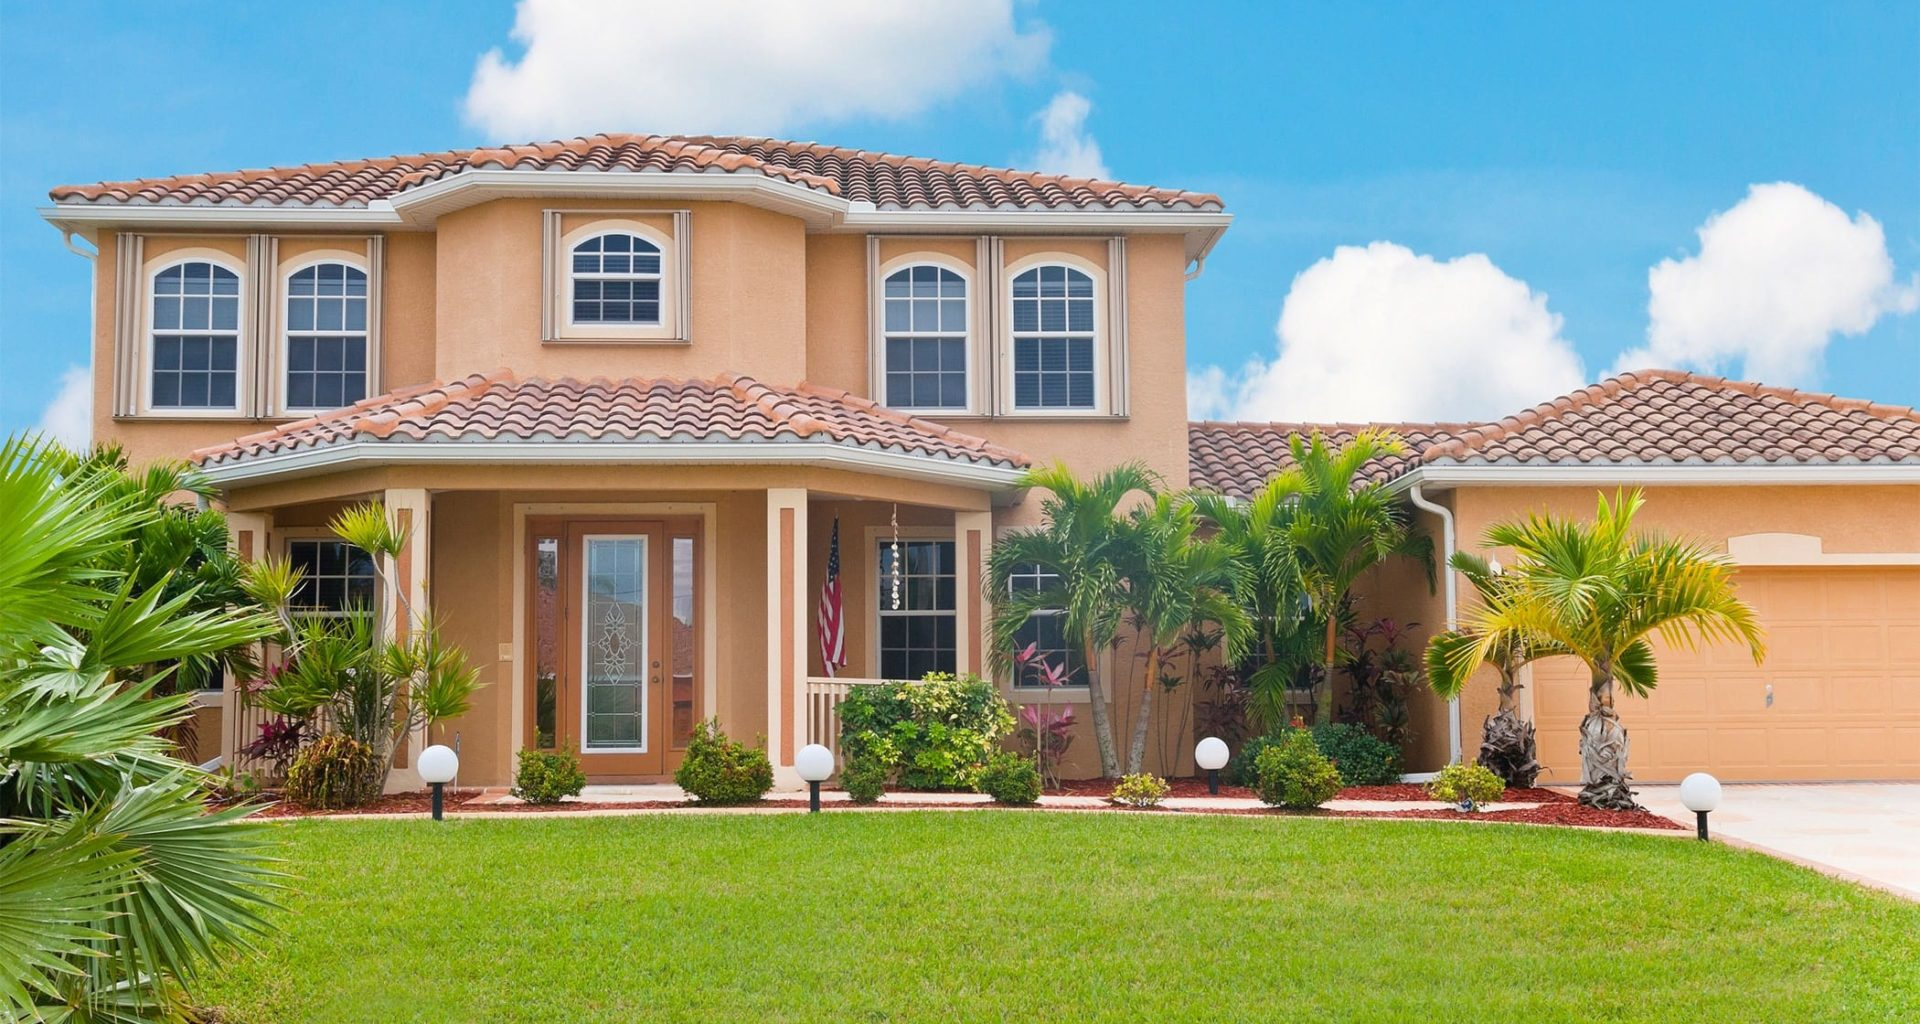 Taking Care of Your Lawn in Florida